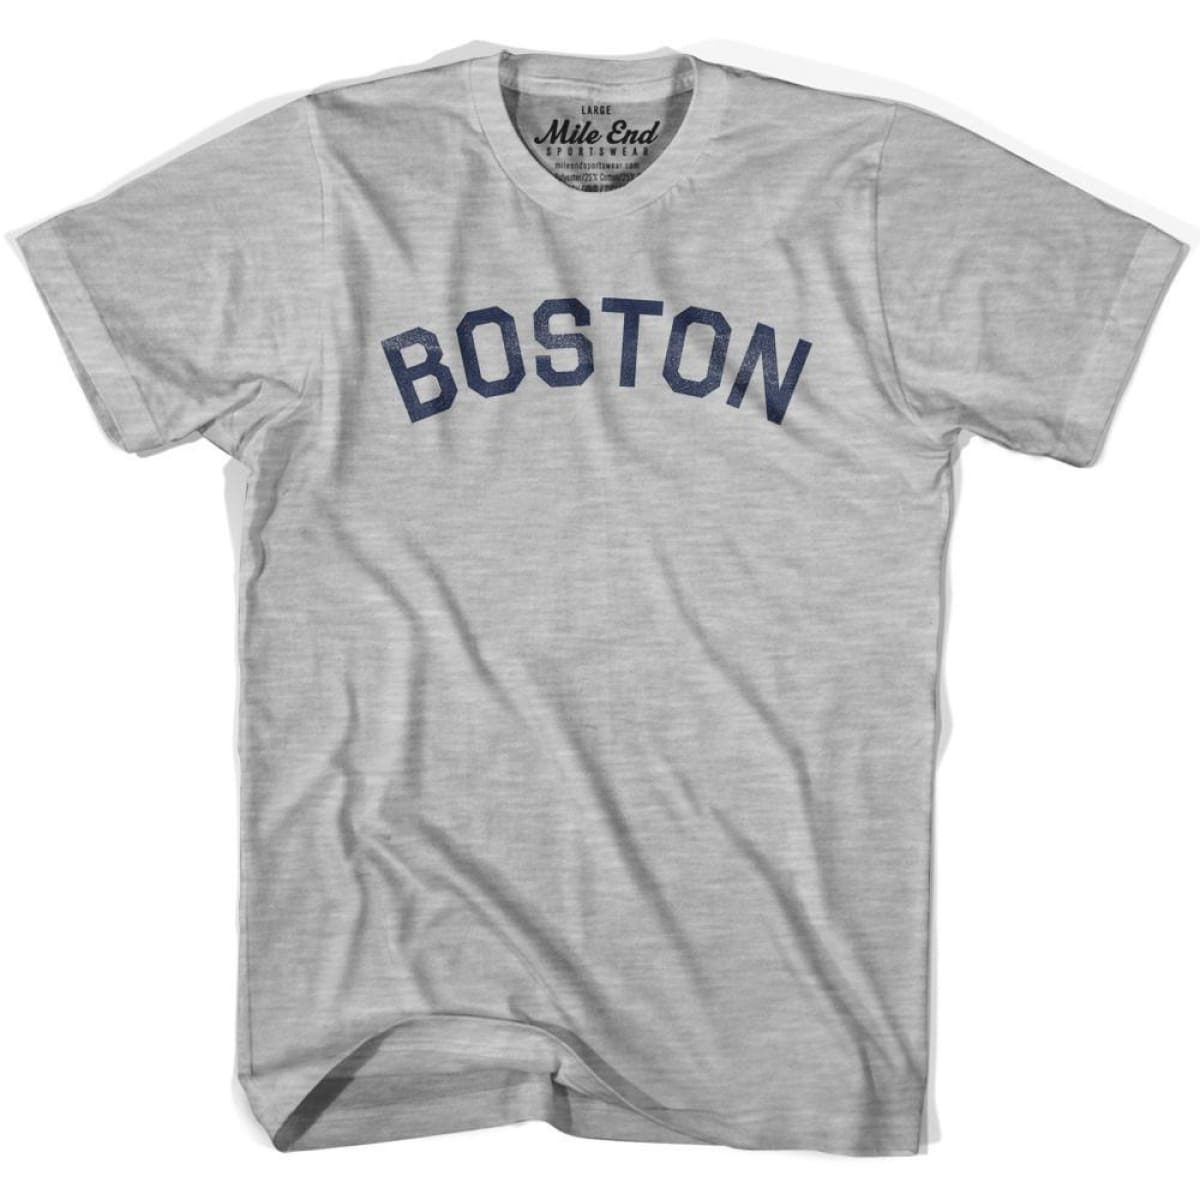 Boston City Vintage T-shirt - Grey Heather / Youth X-Small - Mile End City